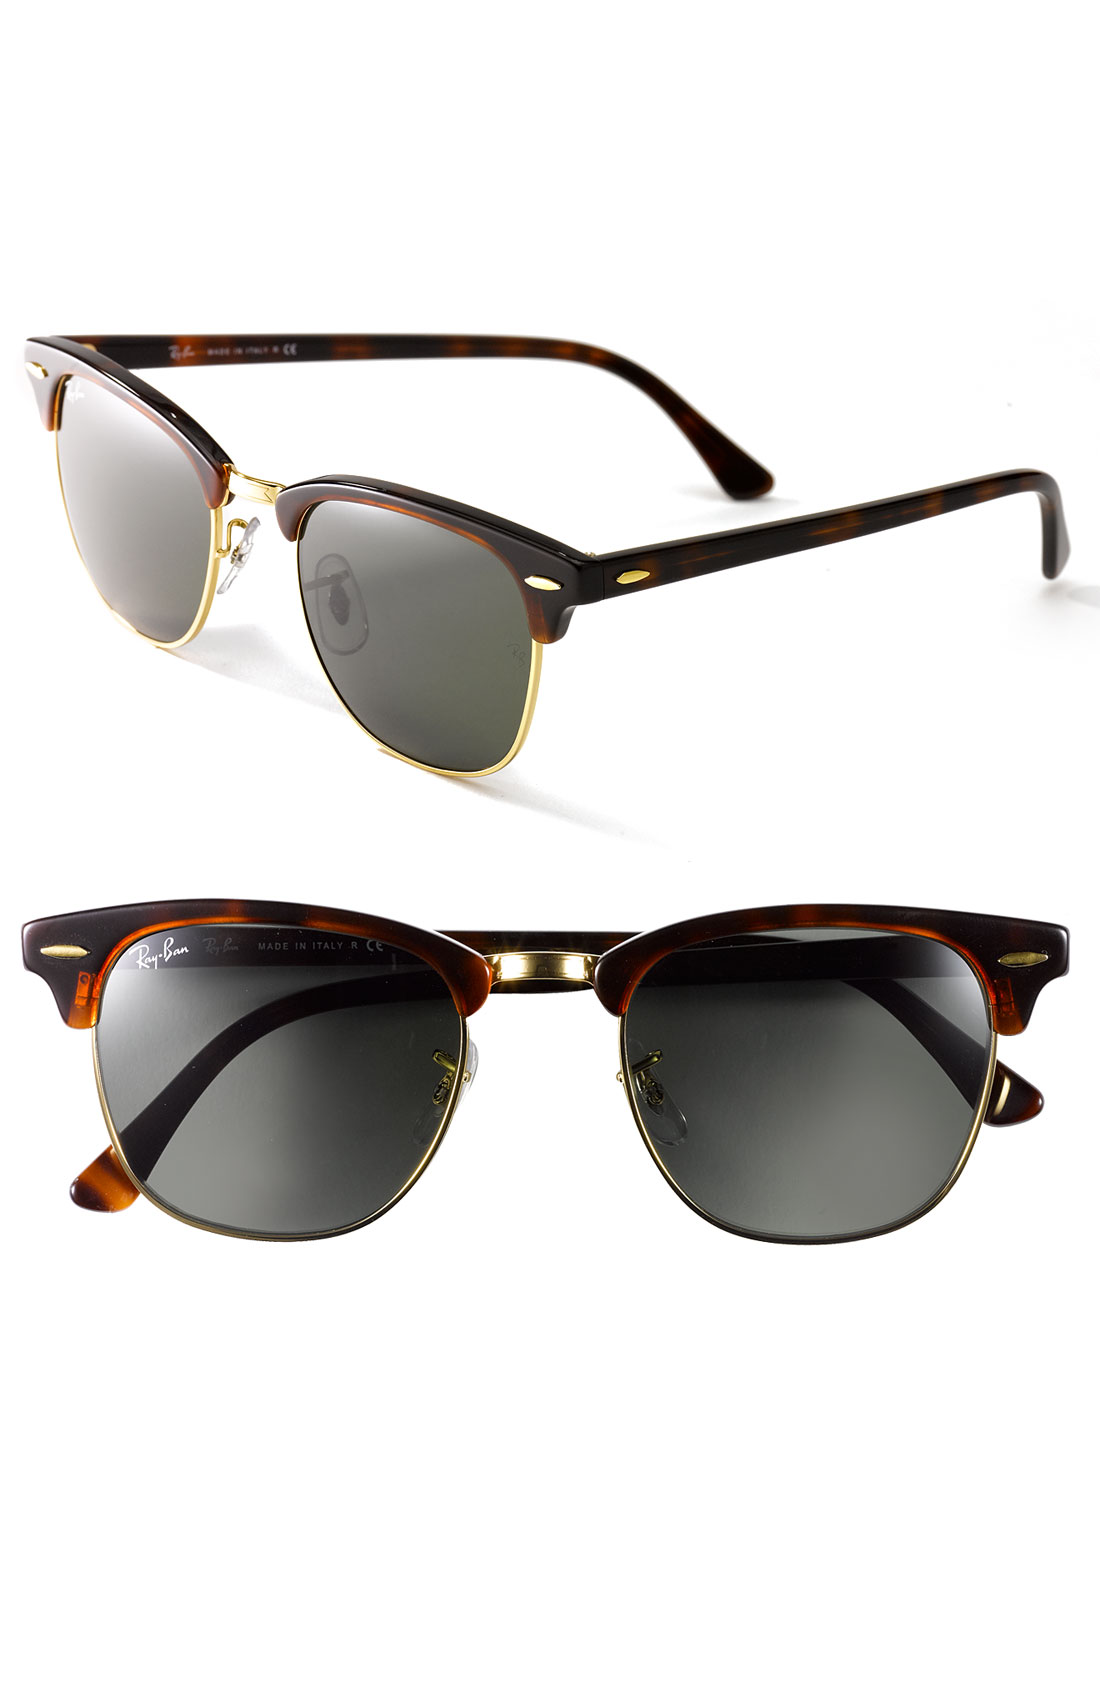 8470ccaf801 Cheap Aviator Sunglasses Ray Ban Clubmaster Sunglasses « Heritage Malta